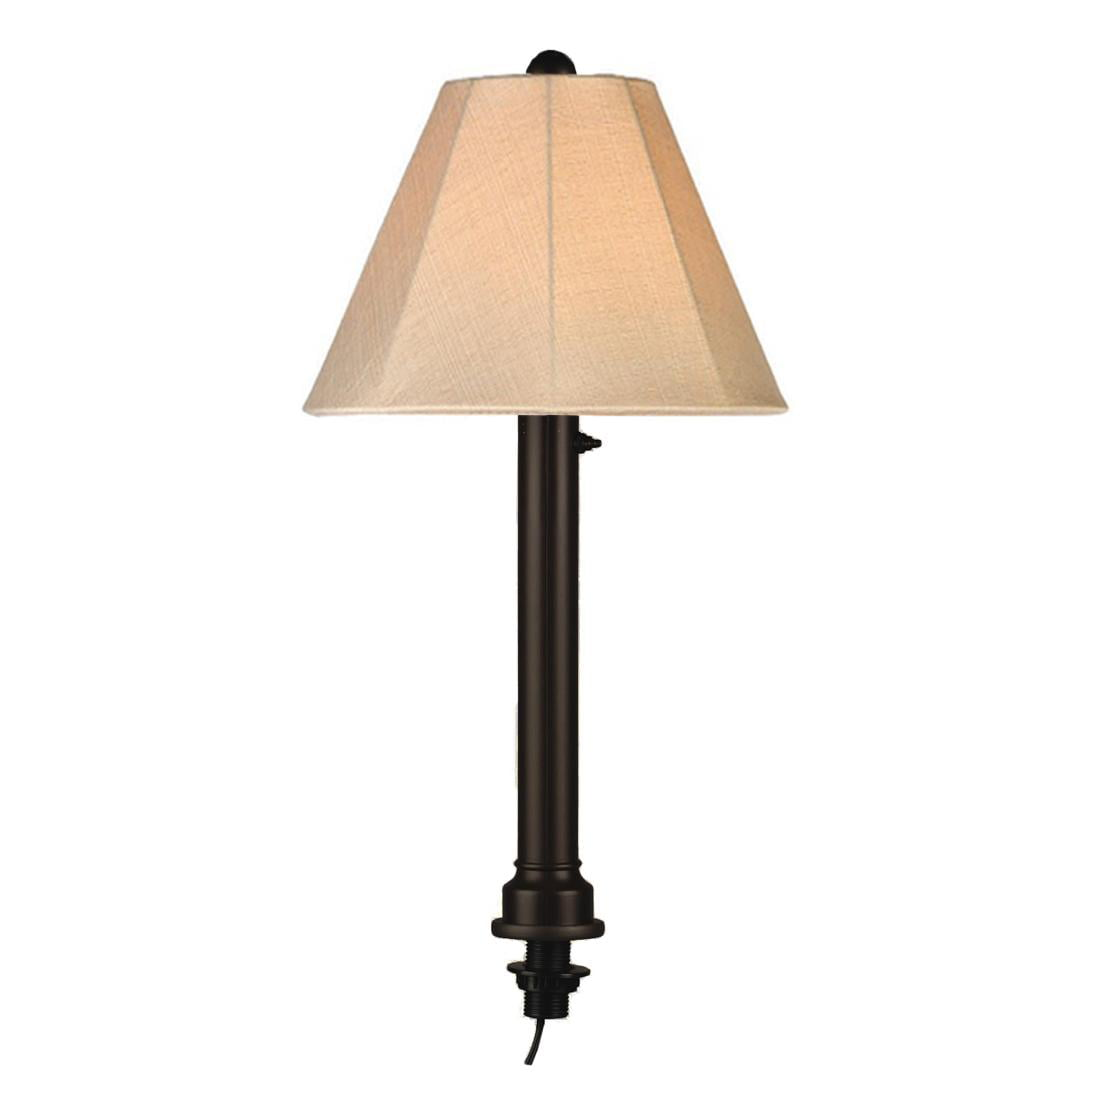 "28"" Tall Umbrella Table Lamp by Patio Living Concepts"